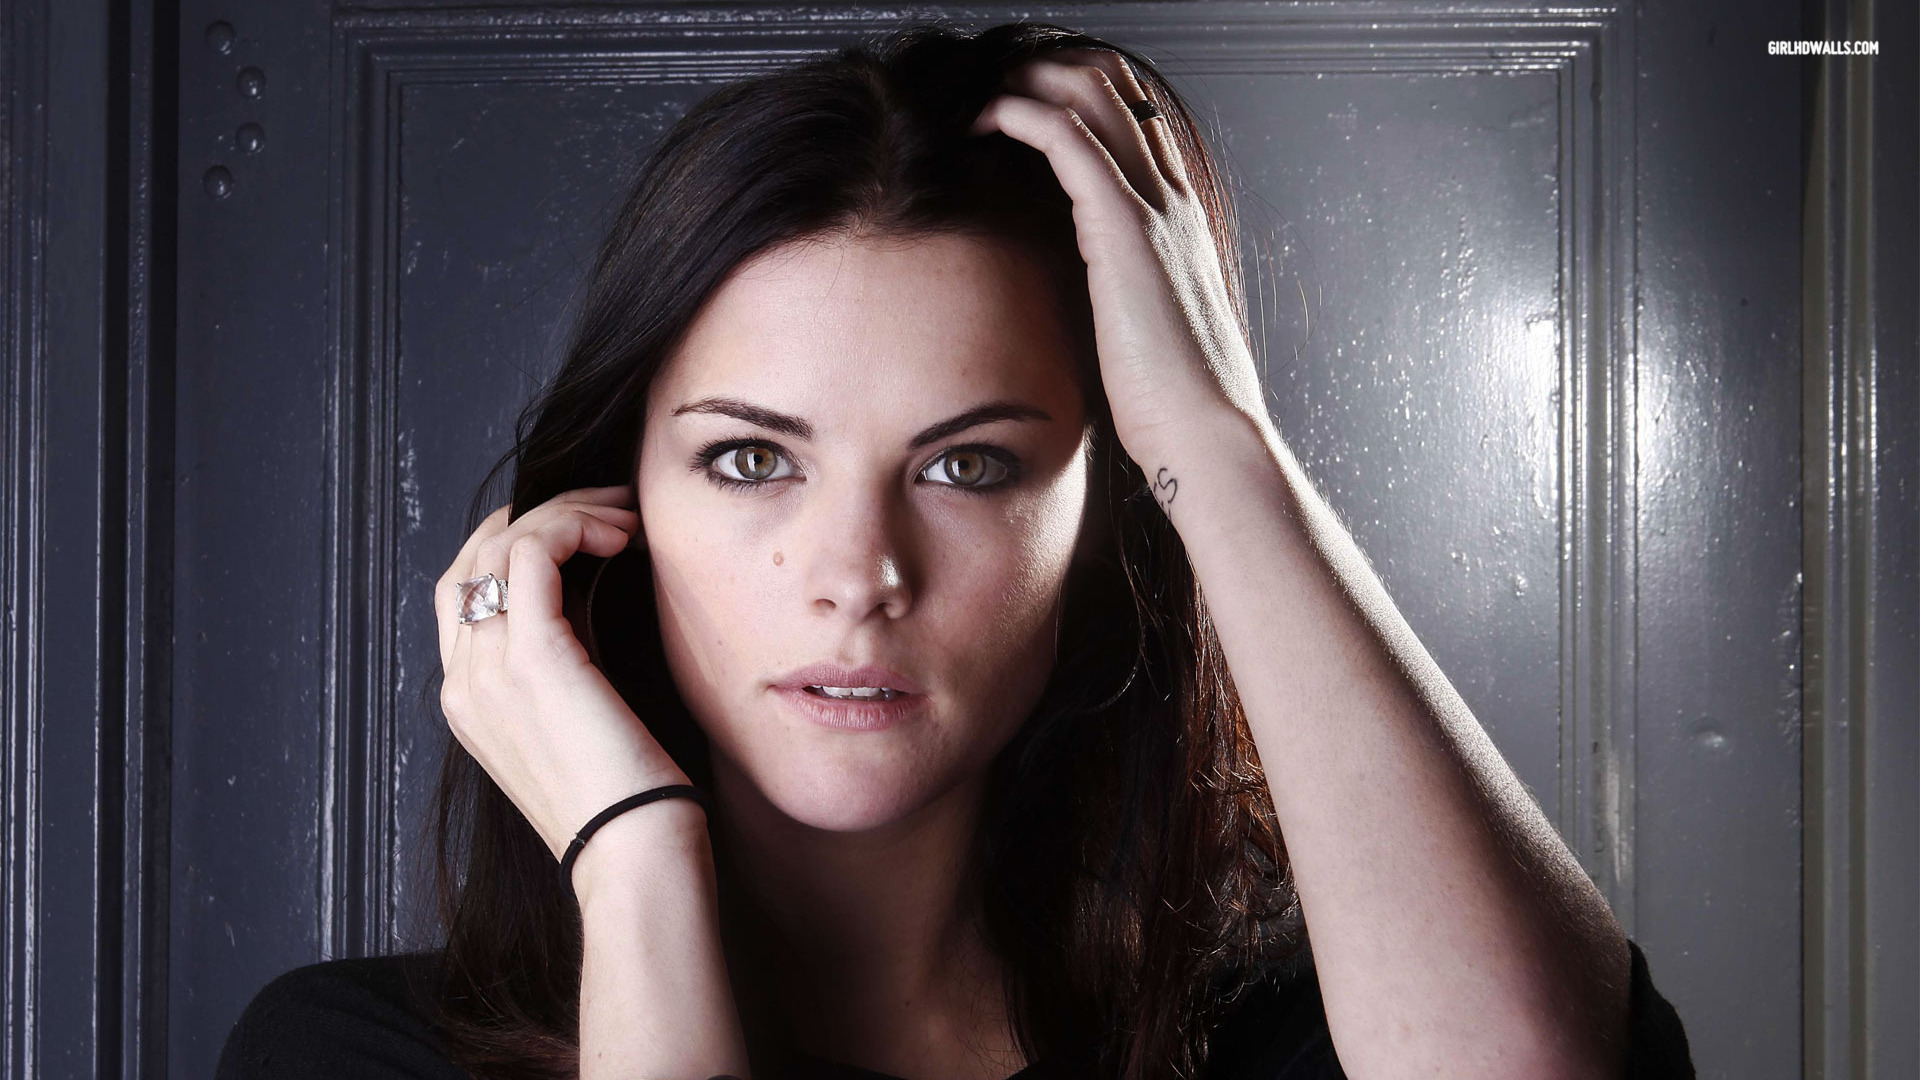 Jaimie alexander hallowed ground 4